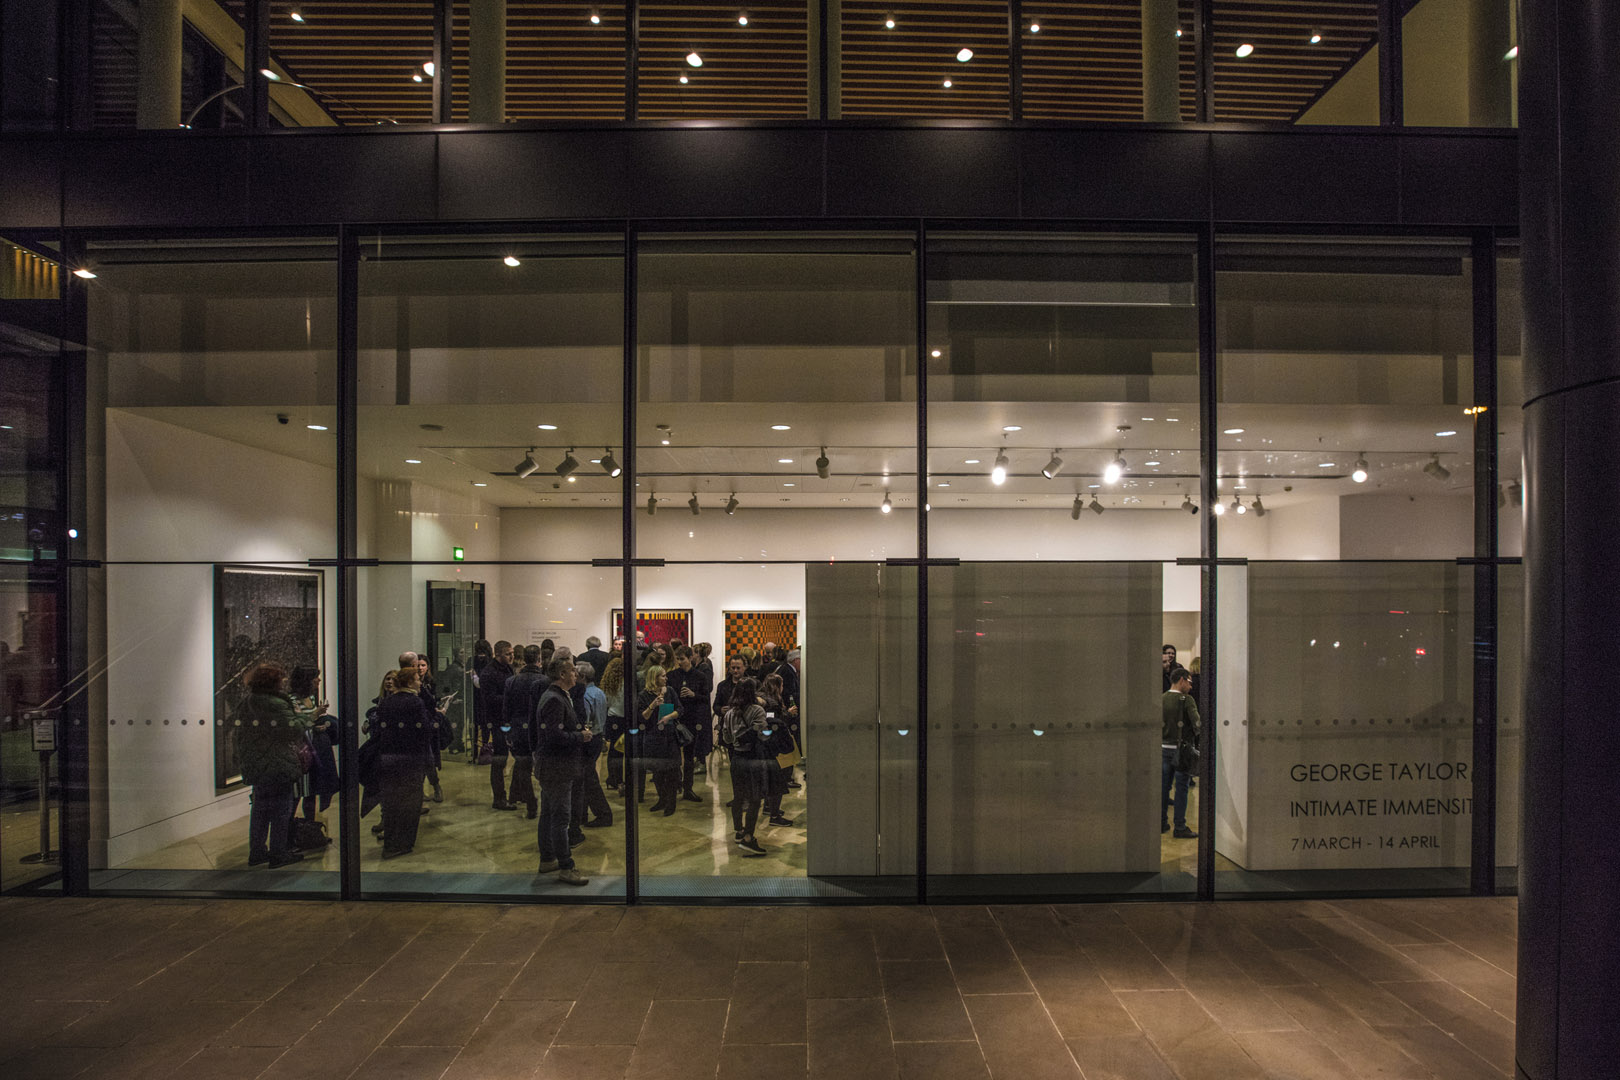 Intimate Immensity Private View at Pangolin London